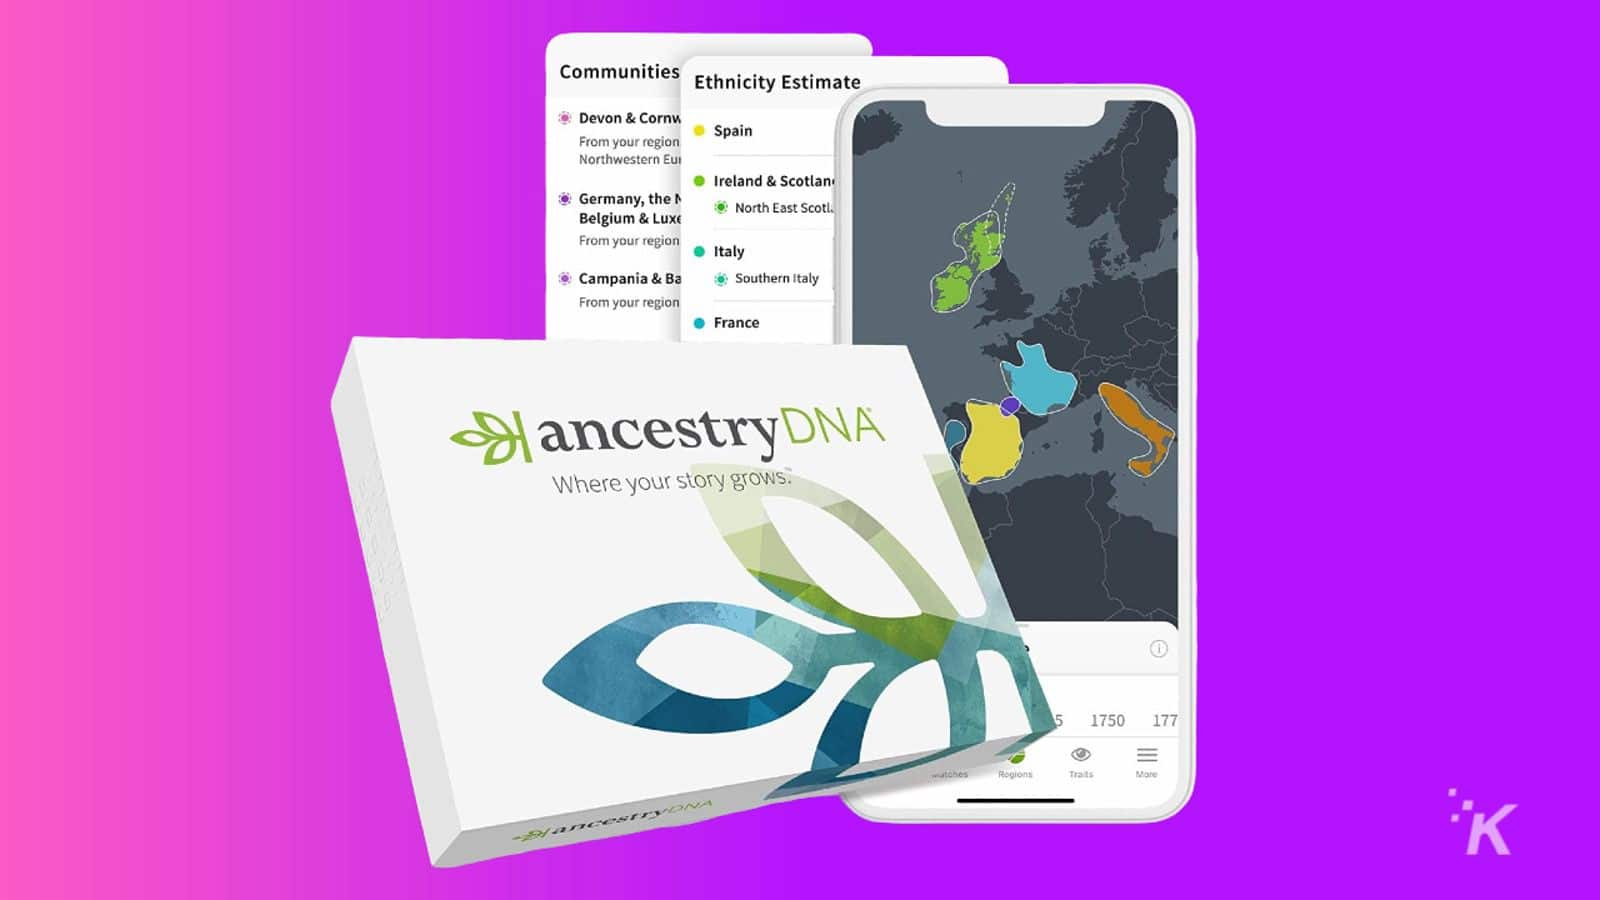 ancestry dna knowtechie gift guide